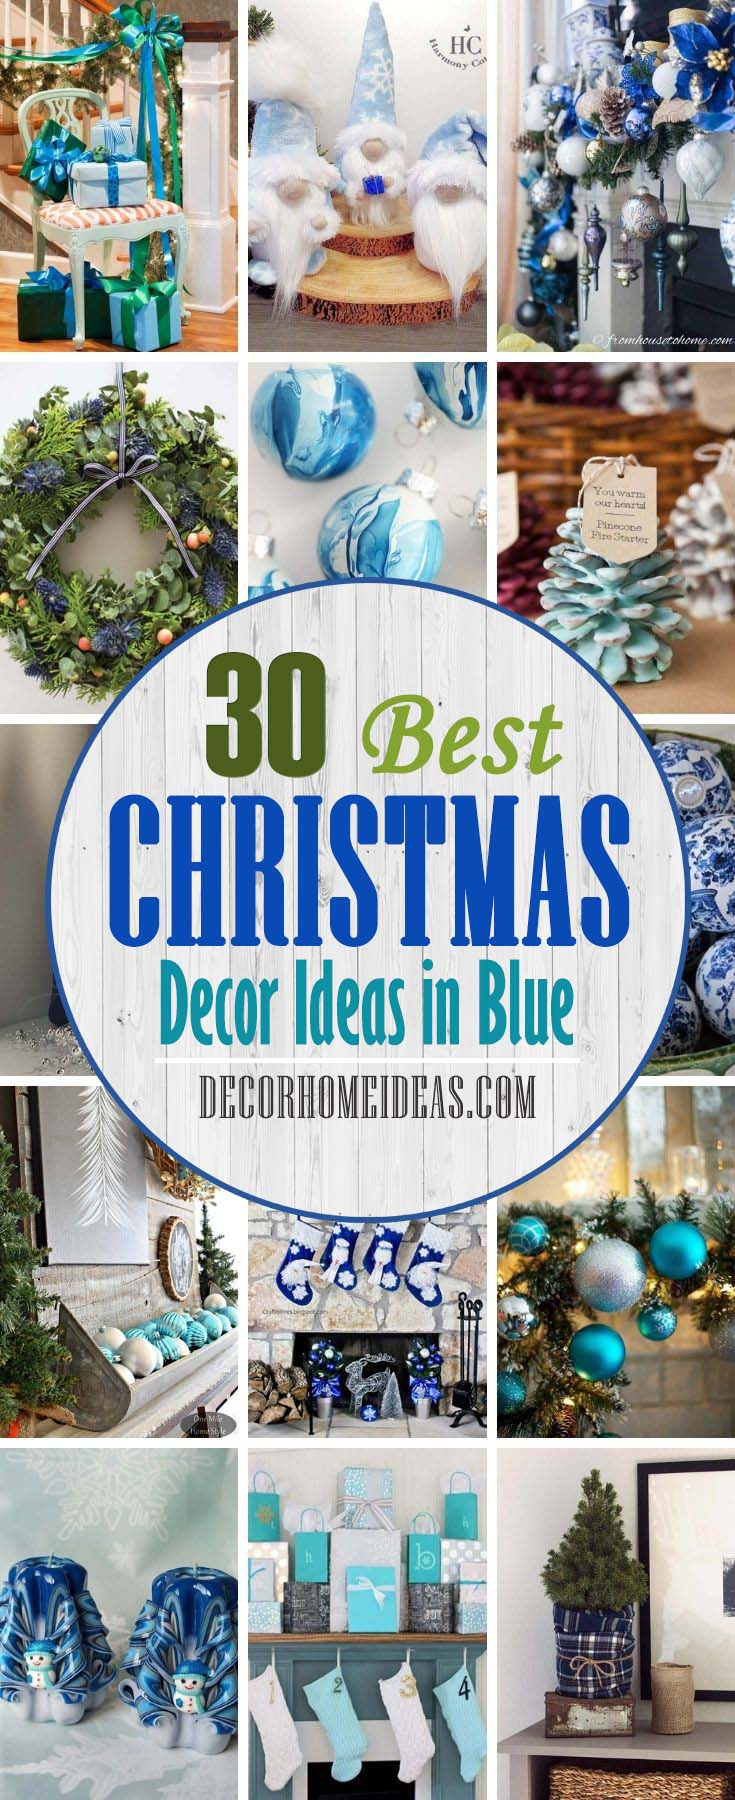 Best Blue Christmas Decor Ideas. Want to have a blue Christmas this year? Try one of these DIY blue Christmas decor ideas to turn your home into an icy winter wonderland. From whimsical garlands to stunning ornaments, find a project you love here.  #decorhomeideas